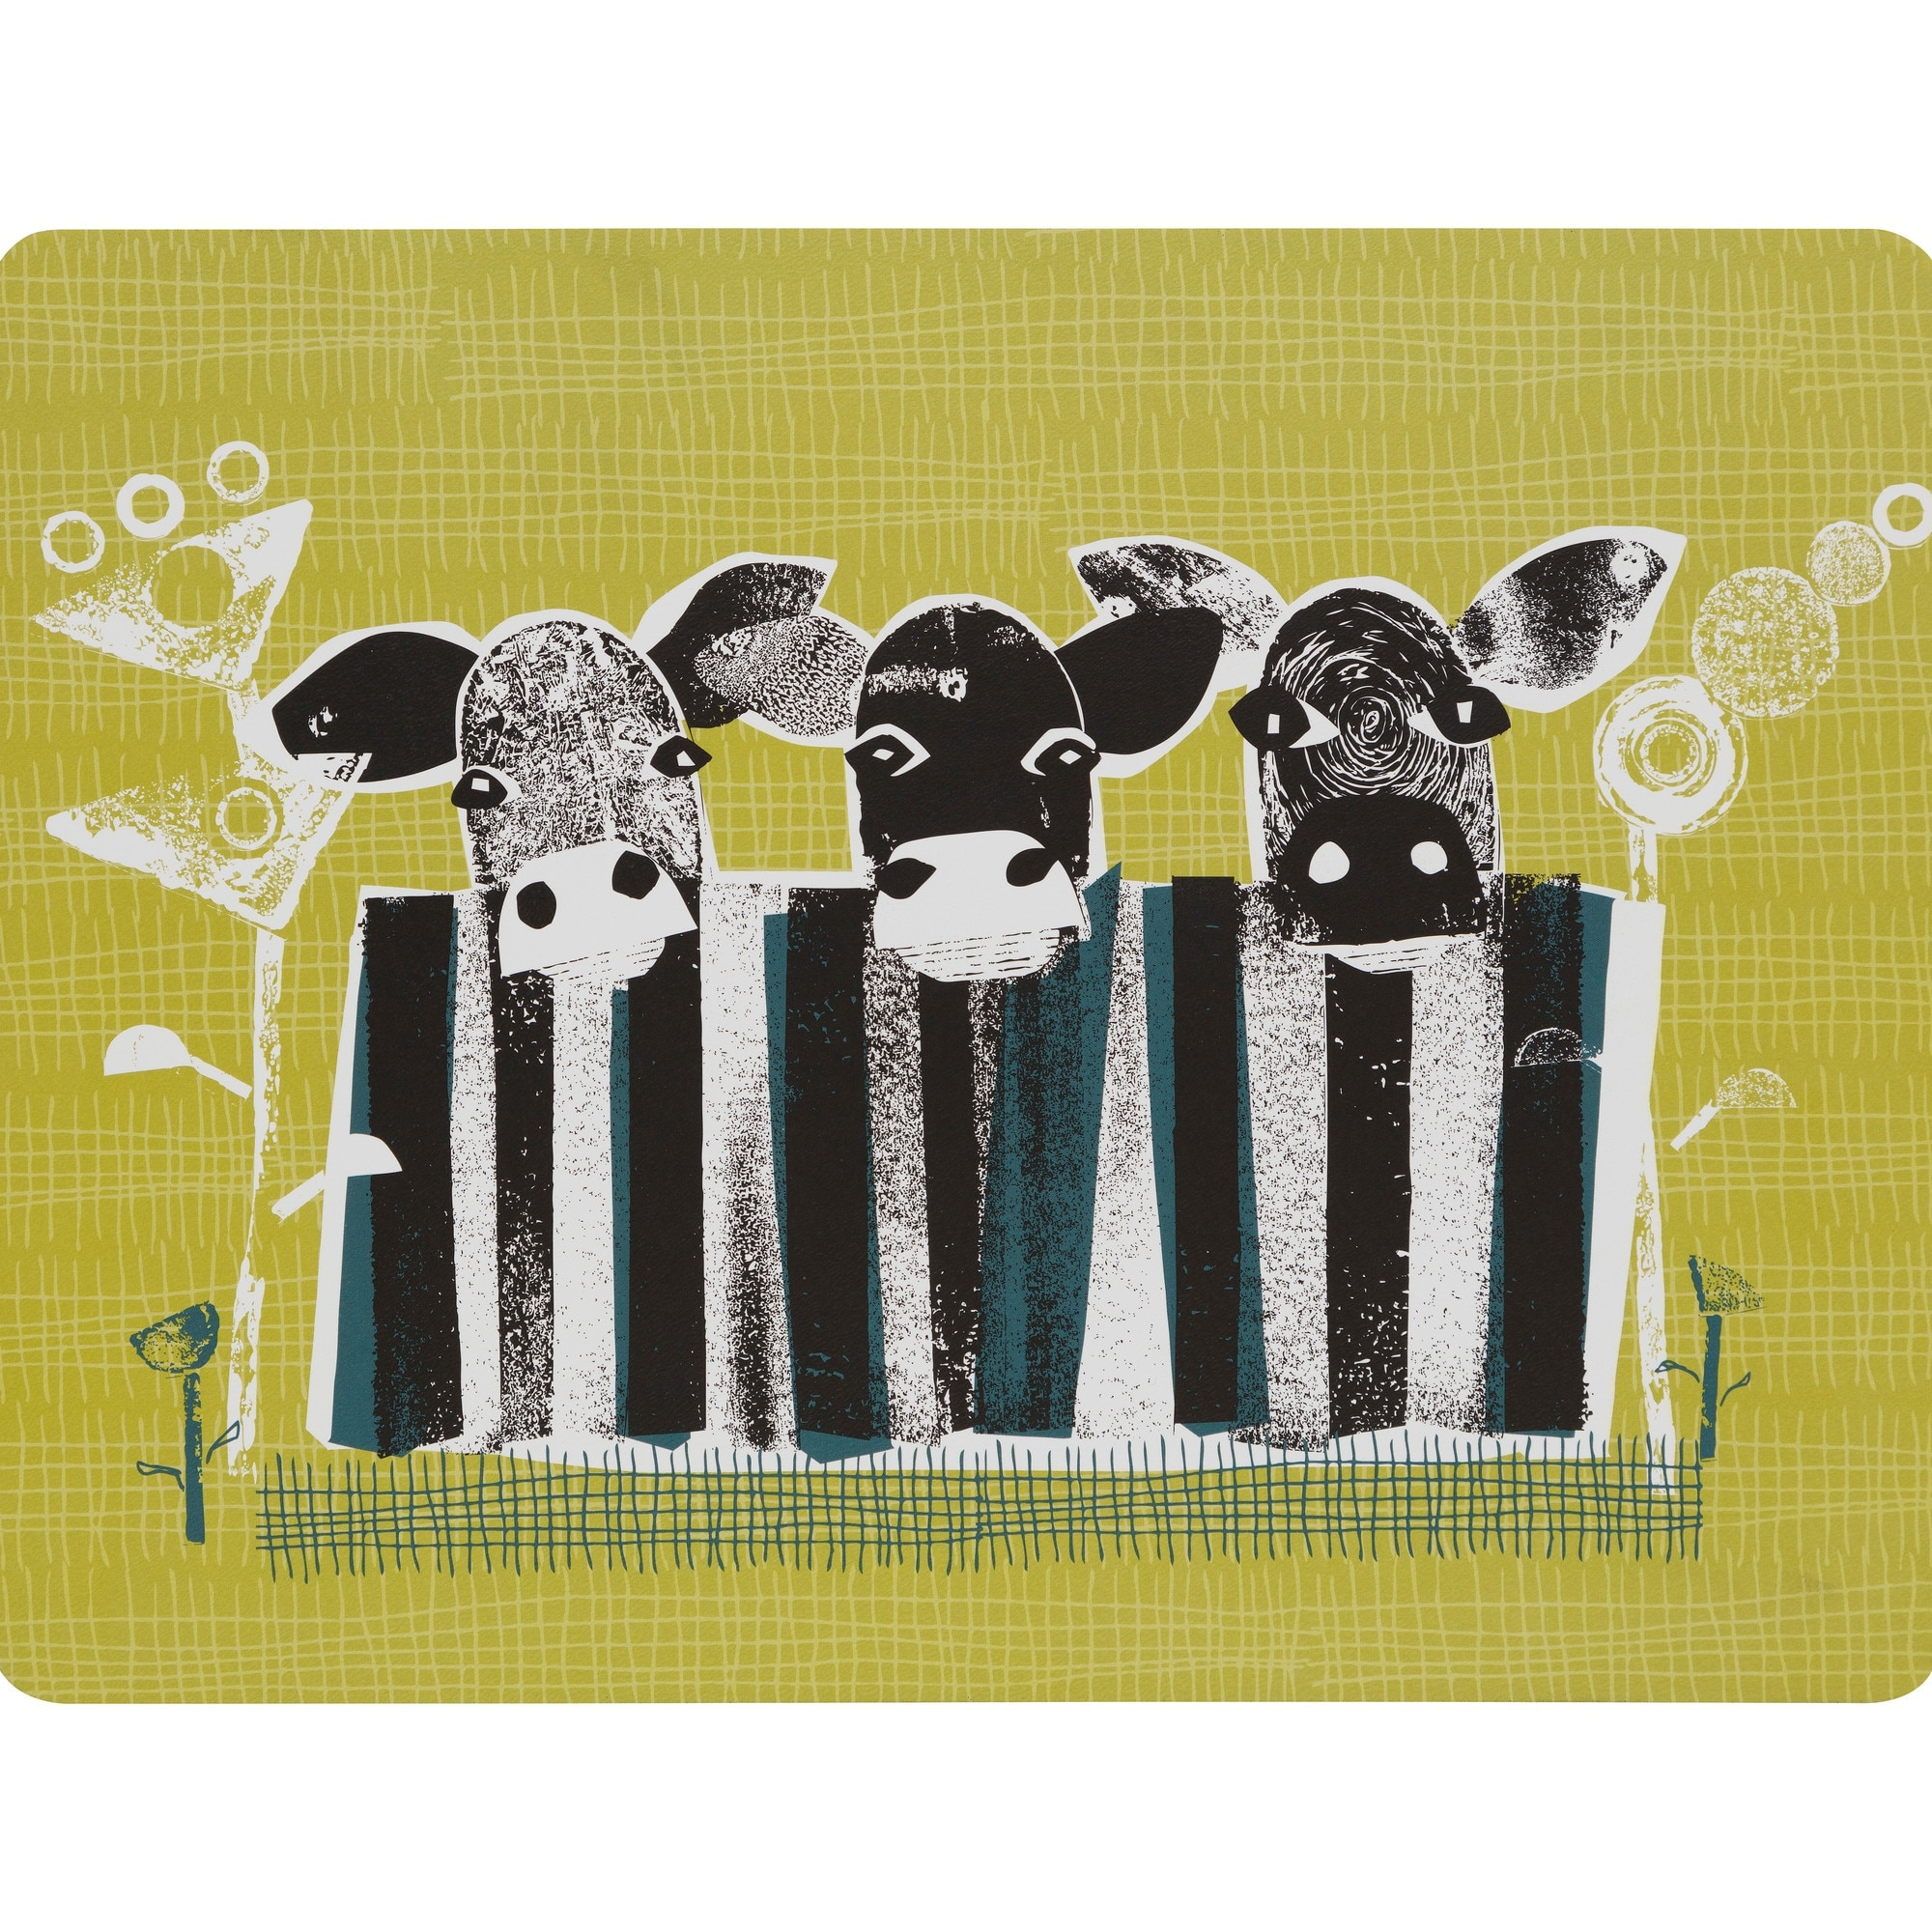 Compare prices for Denby Cow Placemats Set of 6